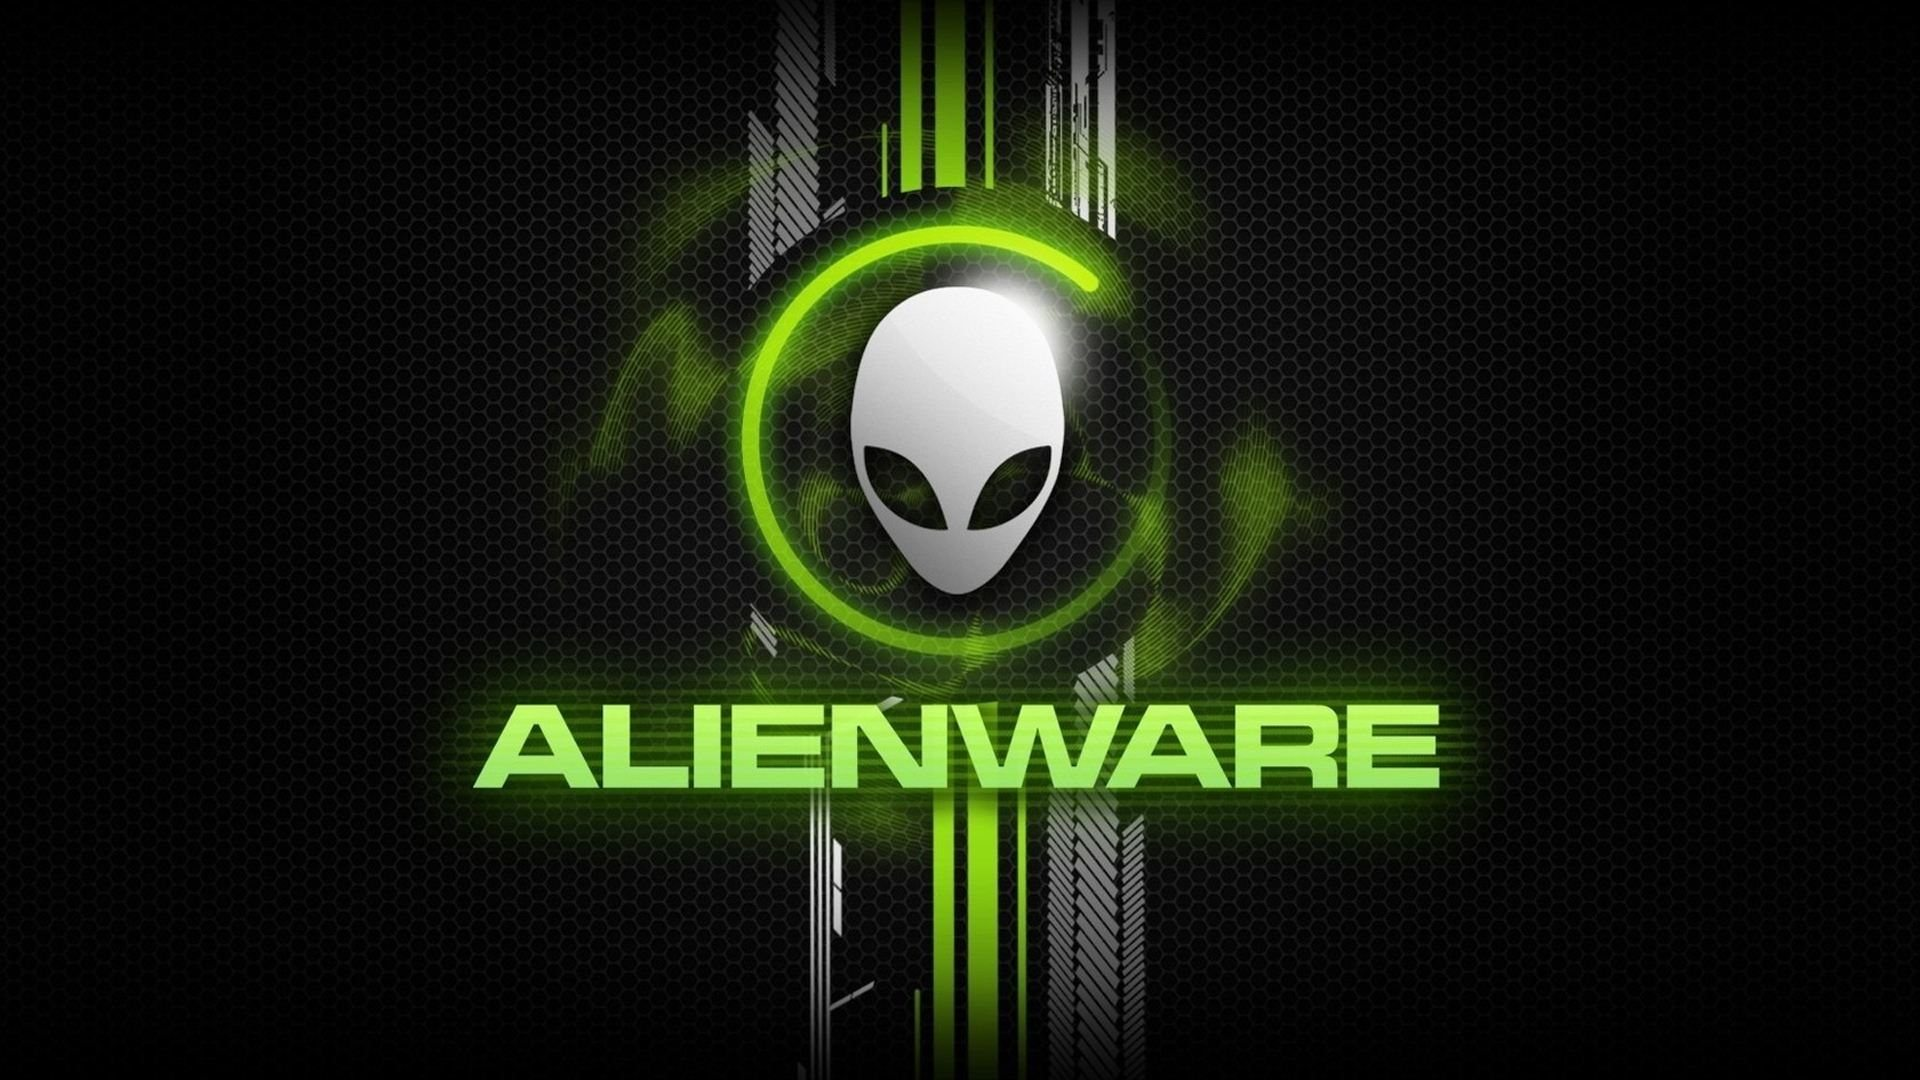 Alienware Celebrates 20 Years of Putting Gamers First with 4 New Products at E3 2016